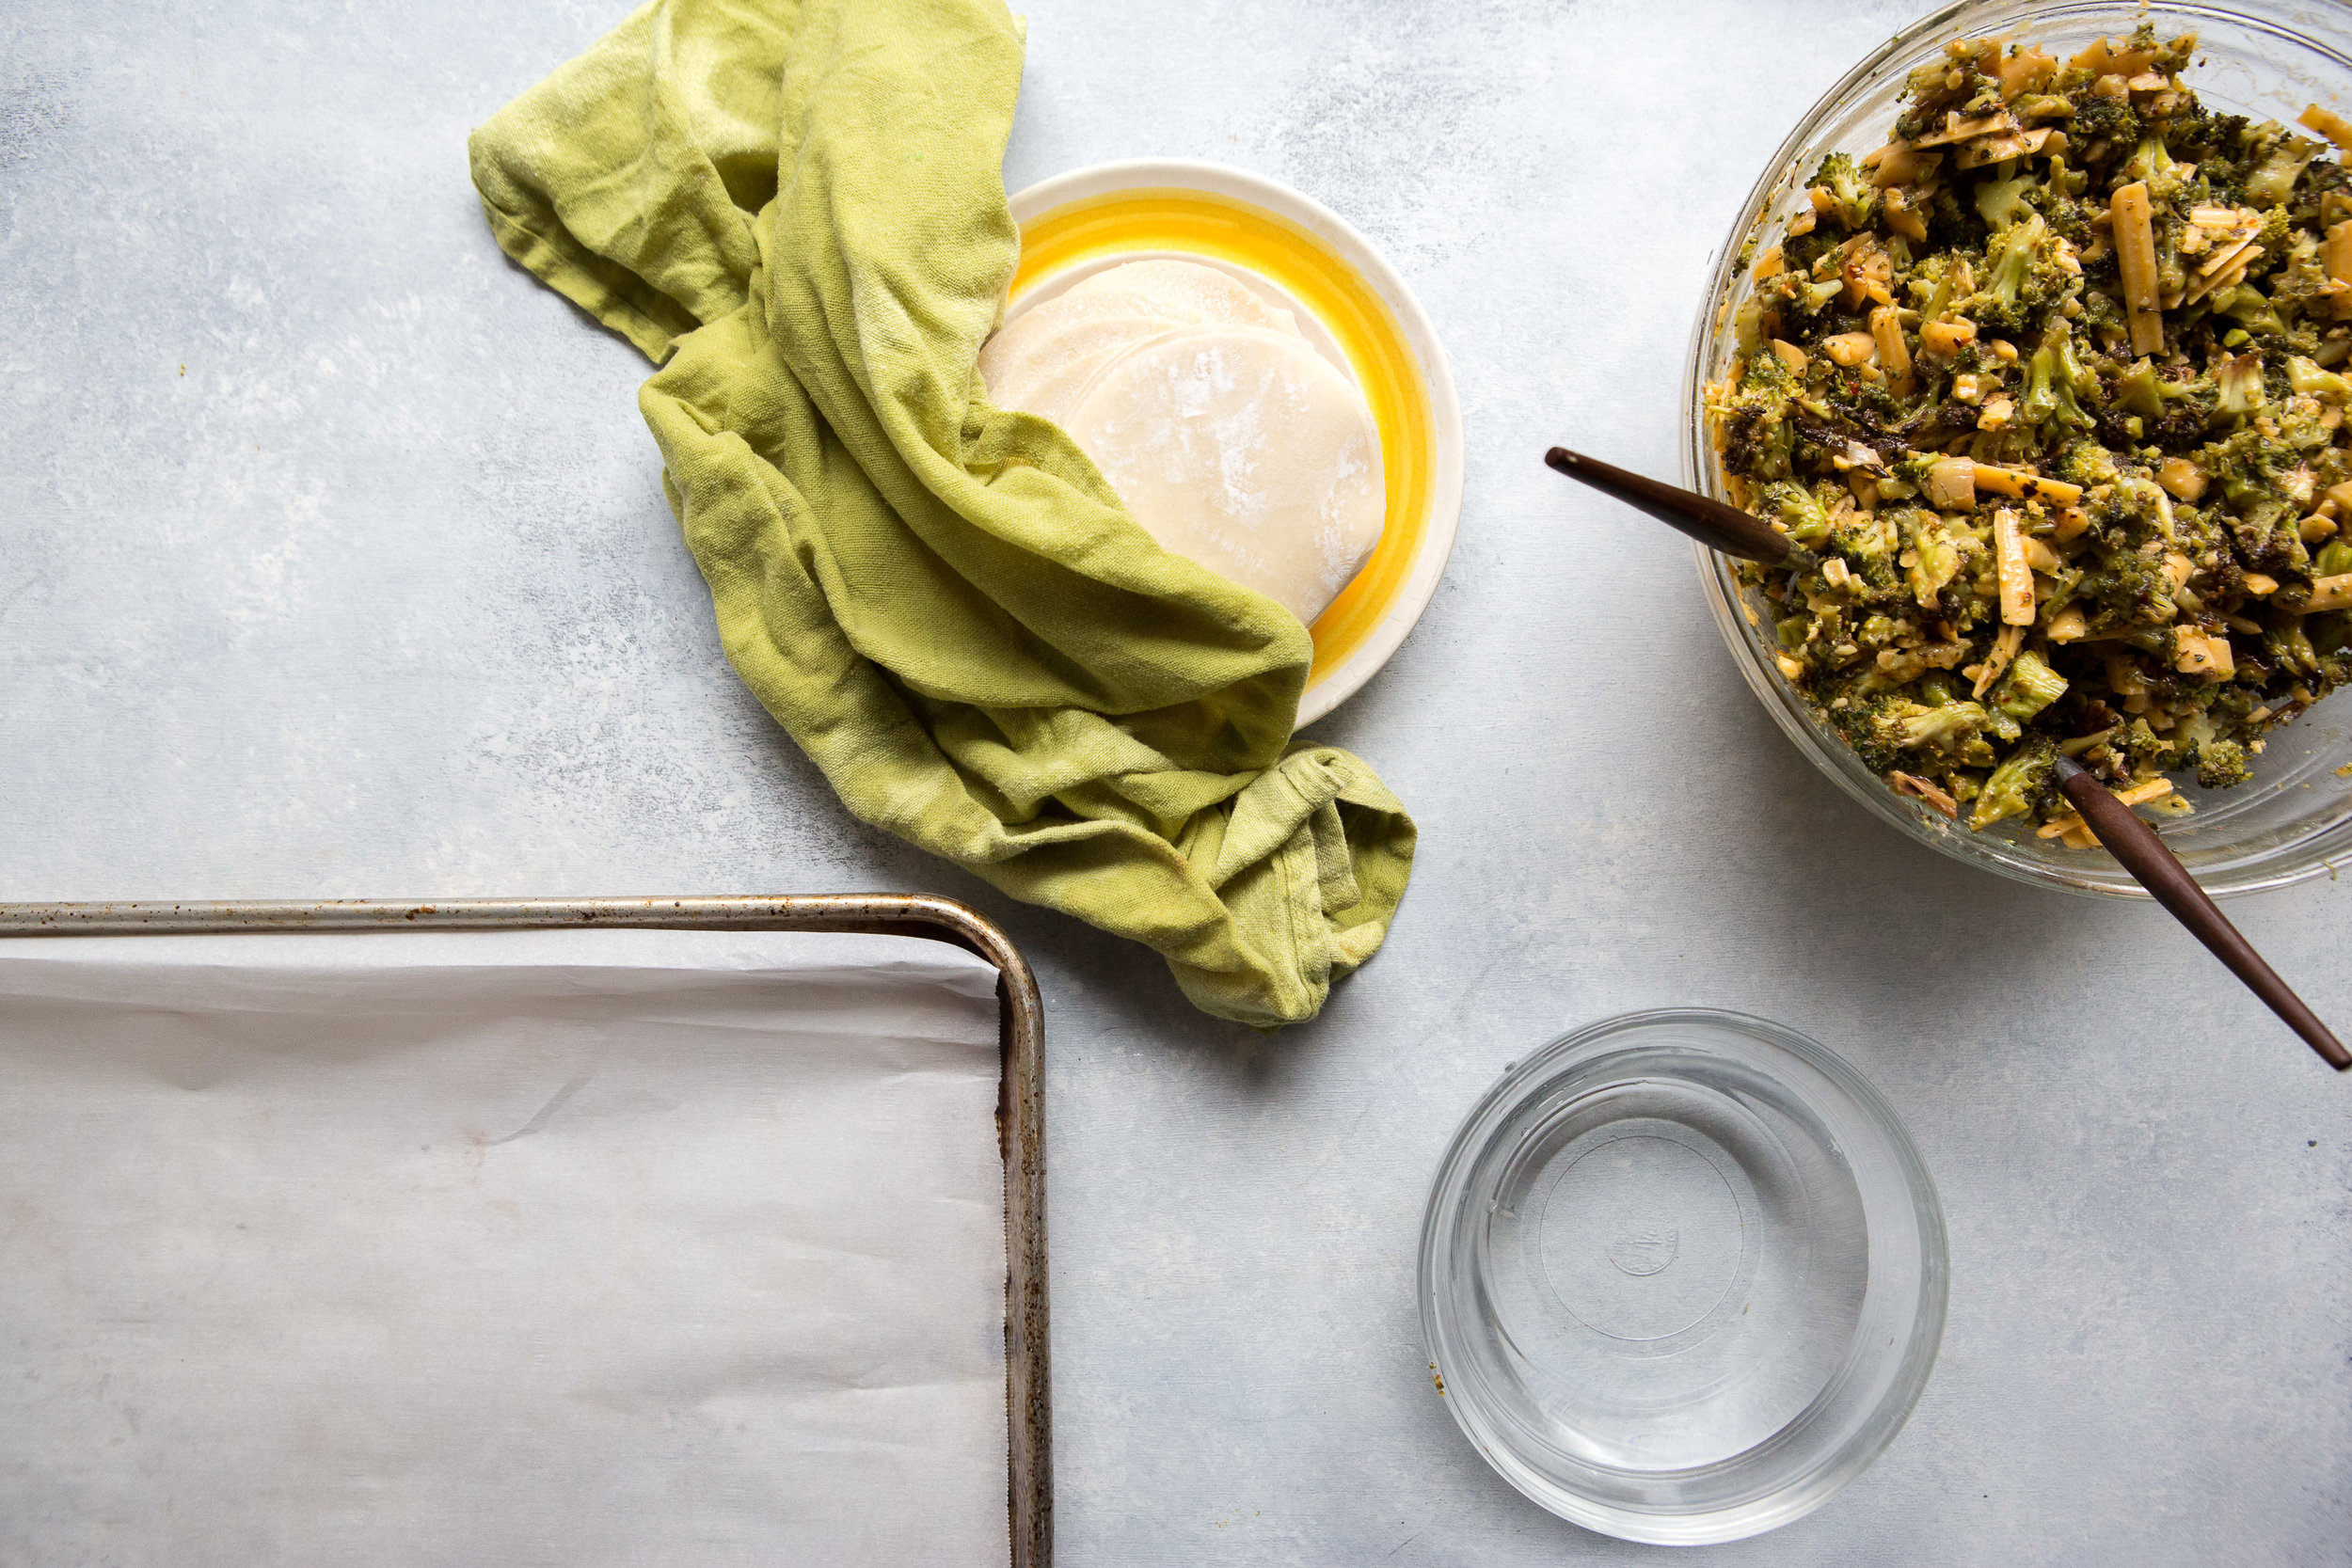 Snow Day Recipe for Broccoli & Cheese Dumplings